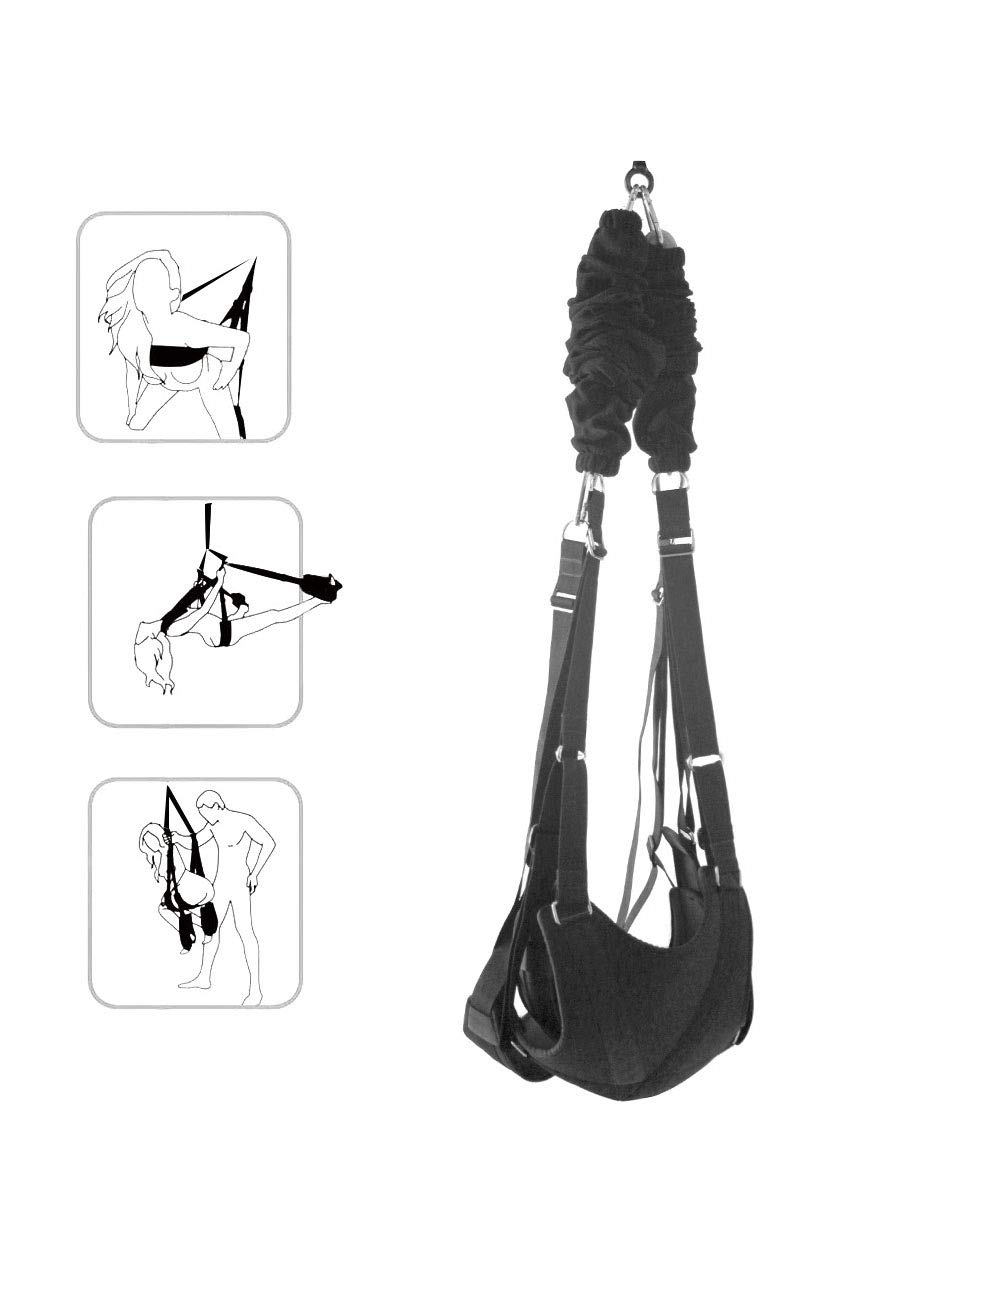 Romantic Ceiling Hanging Swing Set Yoga Swing Séx Swing for Couple Support 220 Ibs Black by Samon